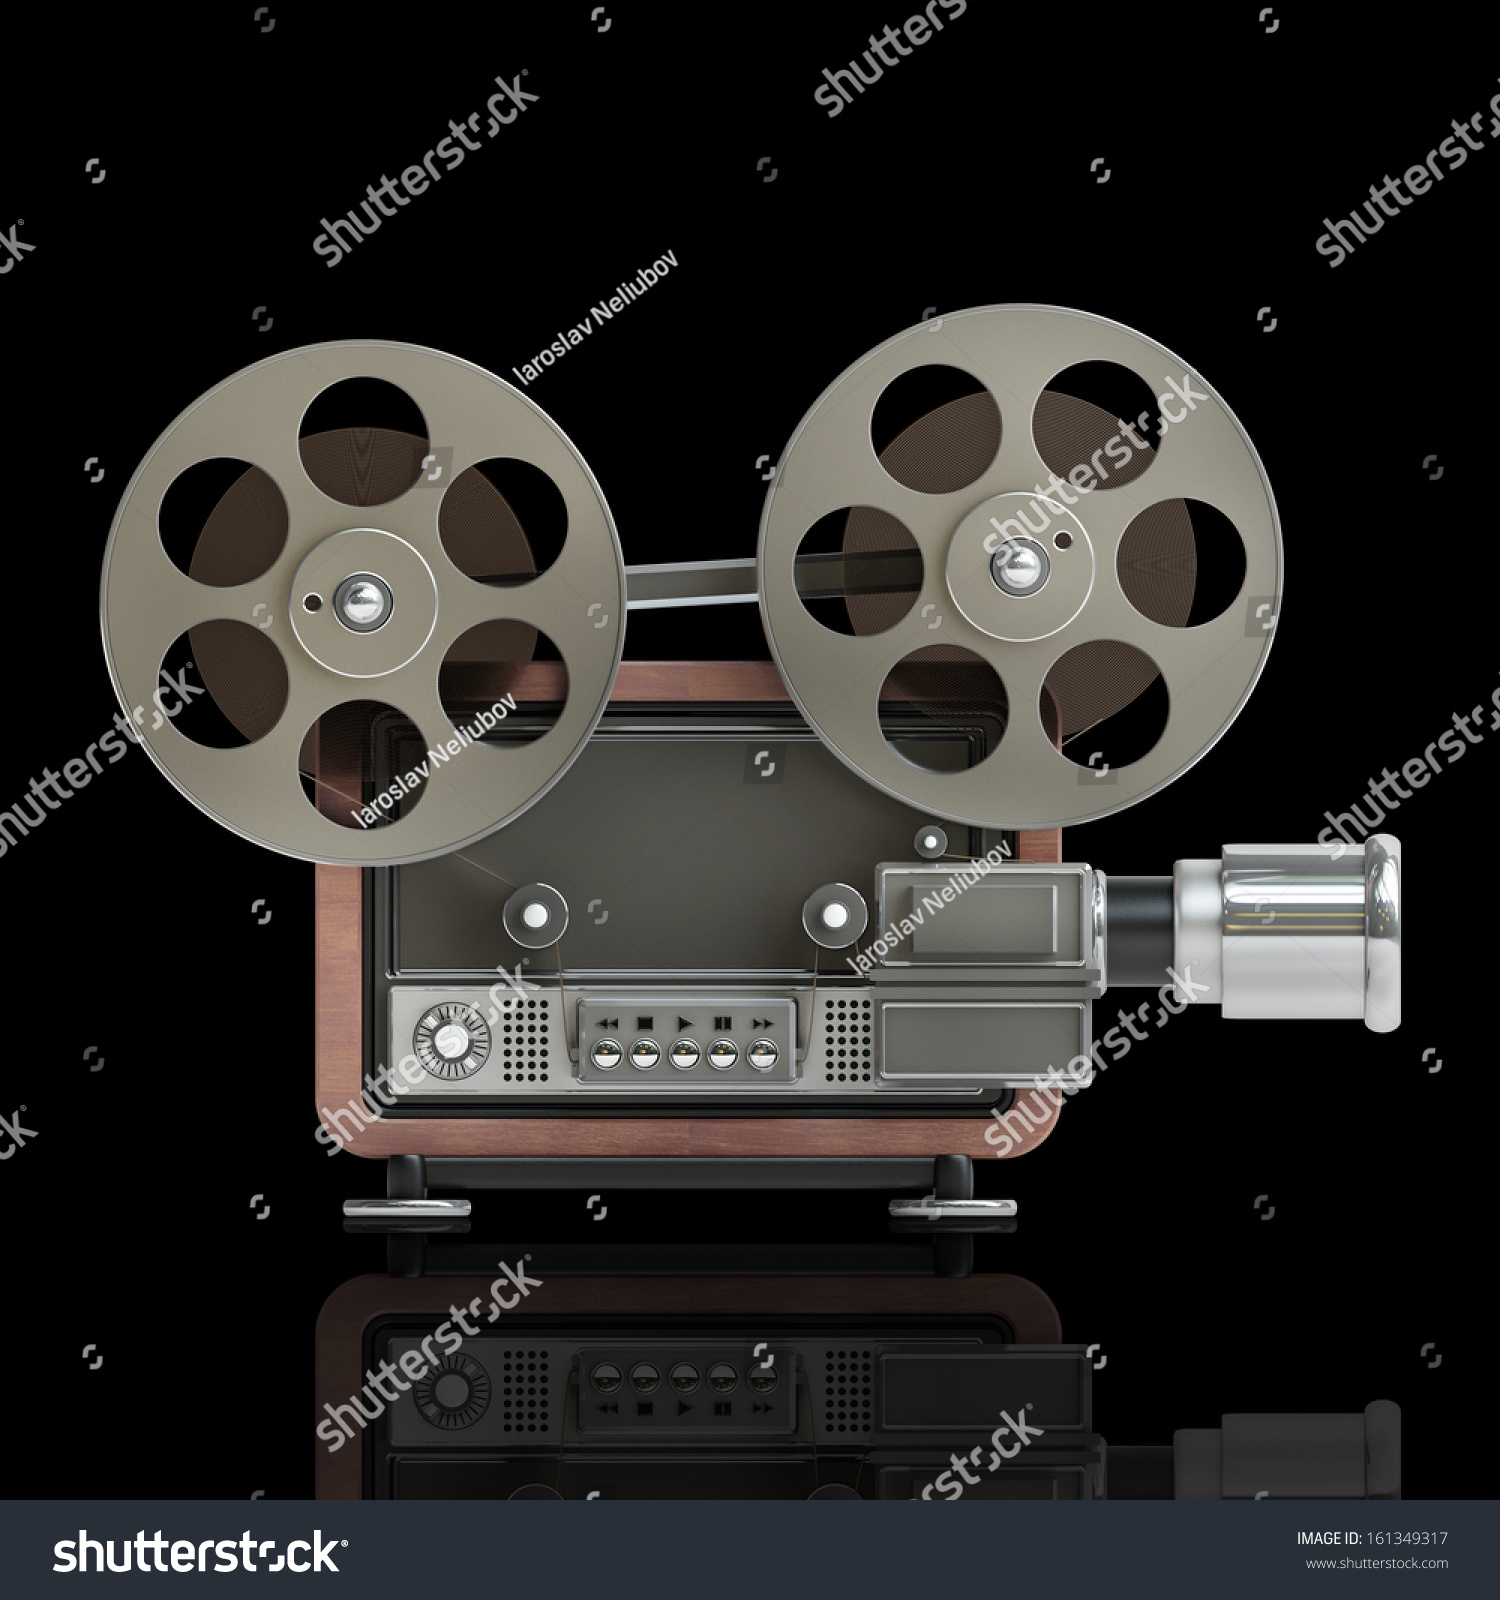 Cinema Projector Old Fashioned High Resolution 3D Image Stock Photo